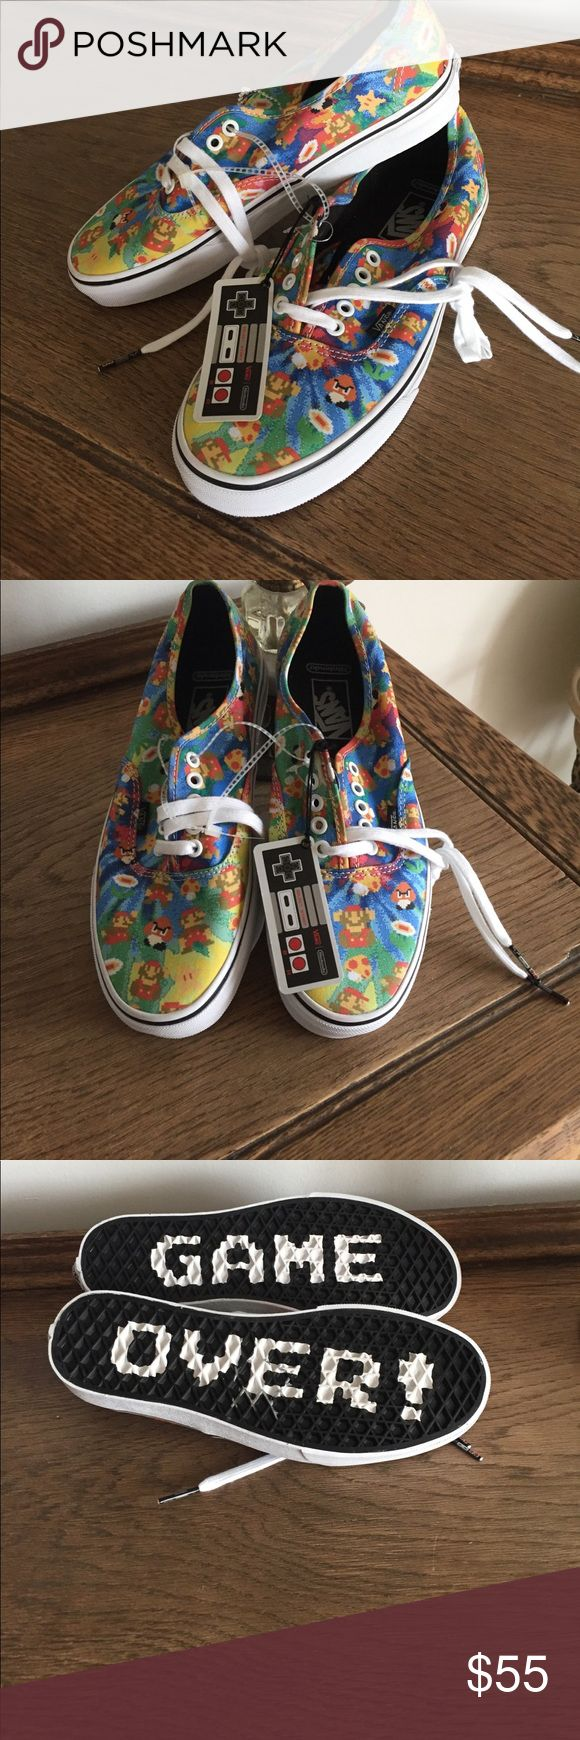 NWT Nintendo Super Mario Bros Vans Vans Nintendo collection super Mario brothers ! No box ,never worn new with tags!  Men's size 8 / Women's 9 1/2. Vans Shoes Sneakers